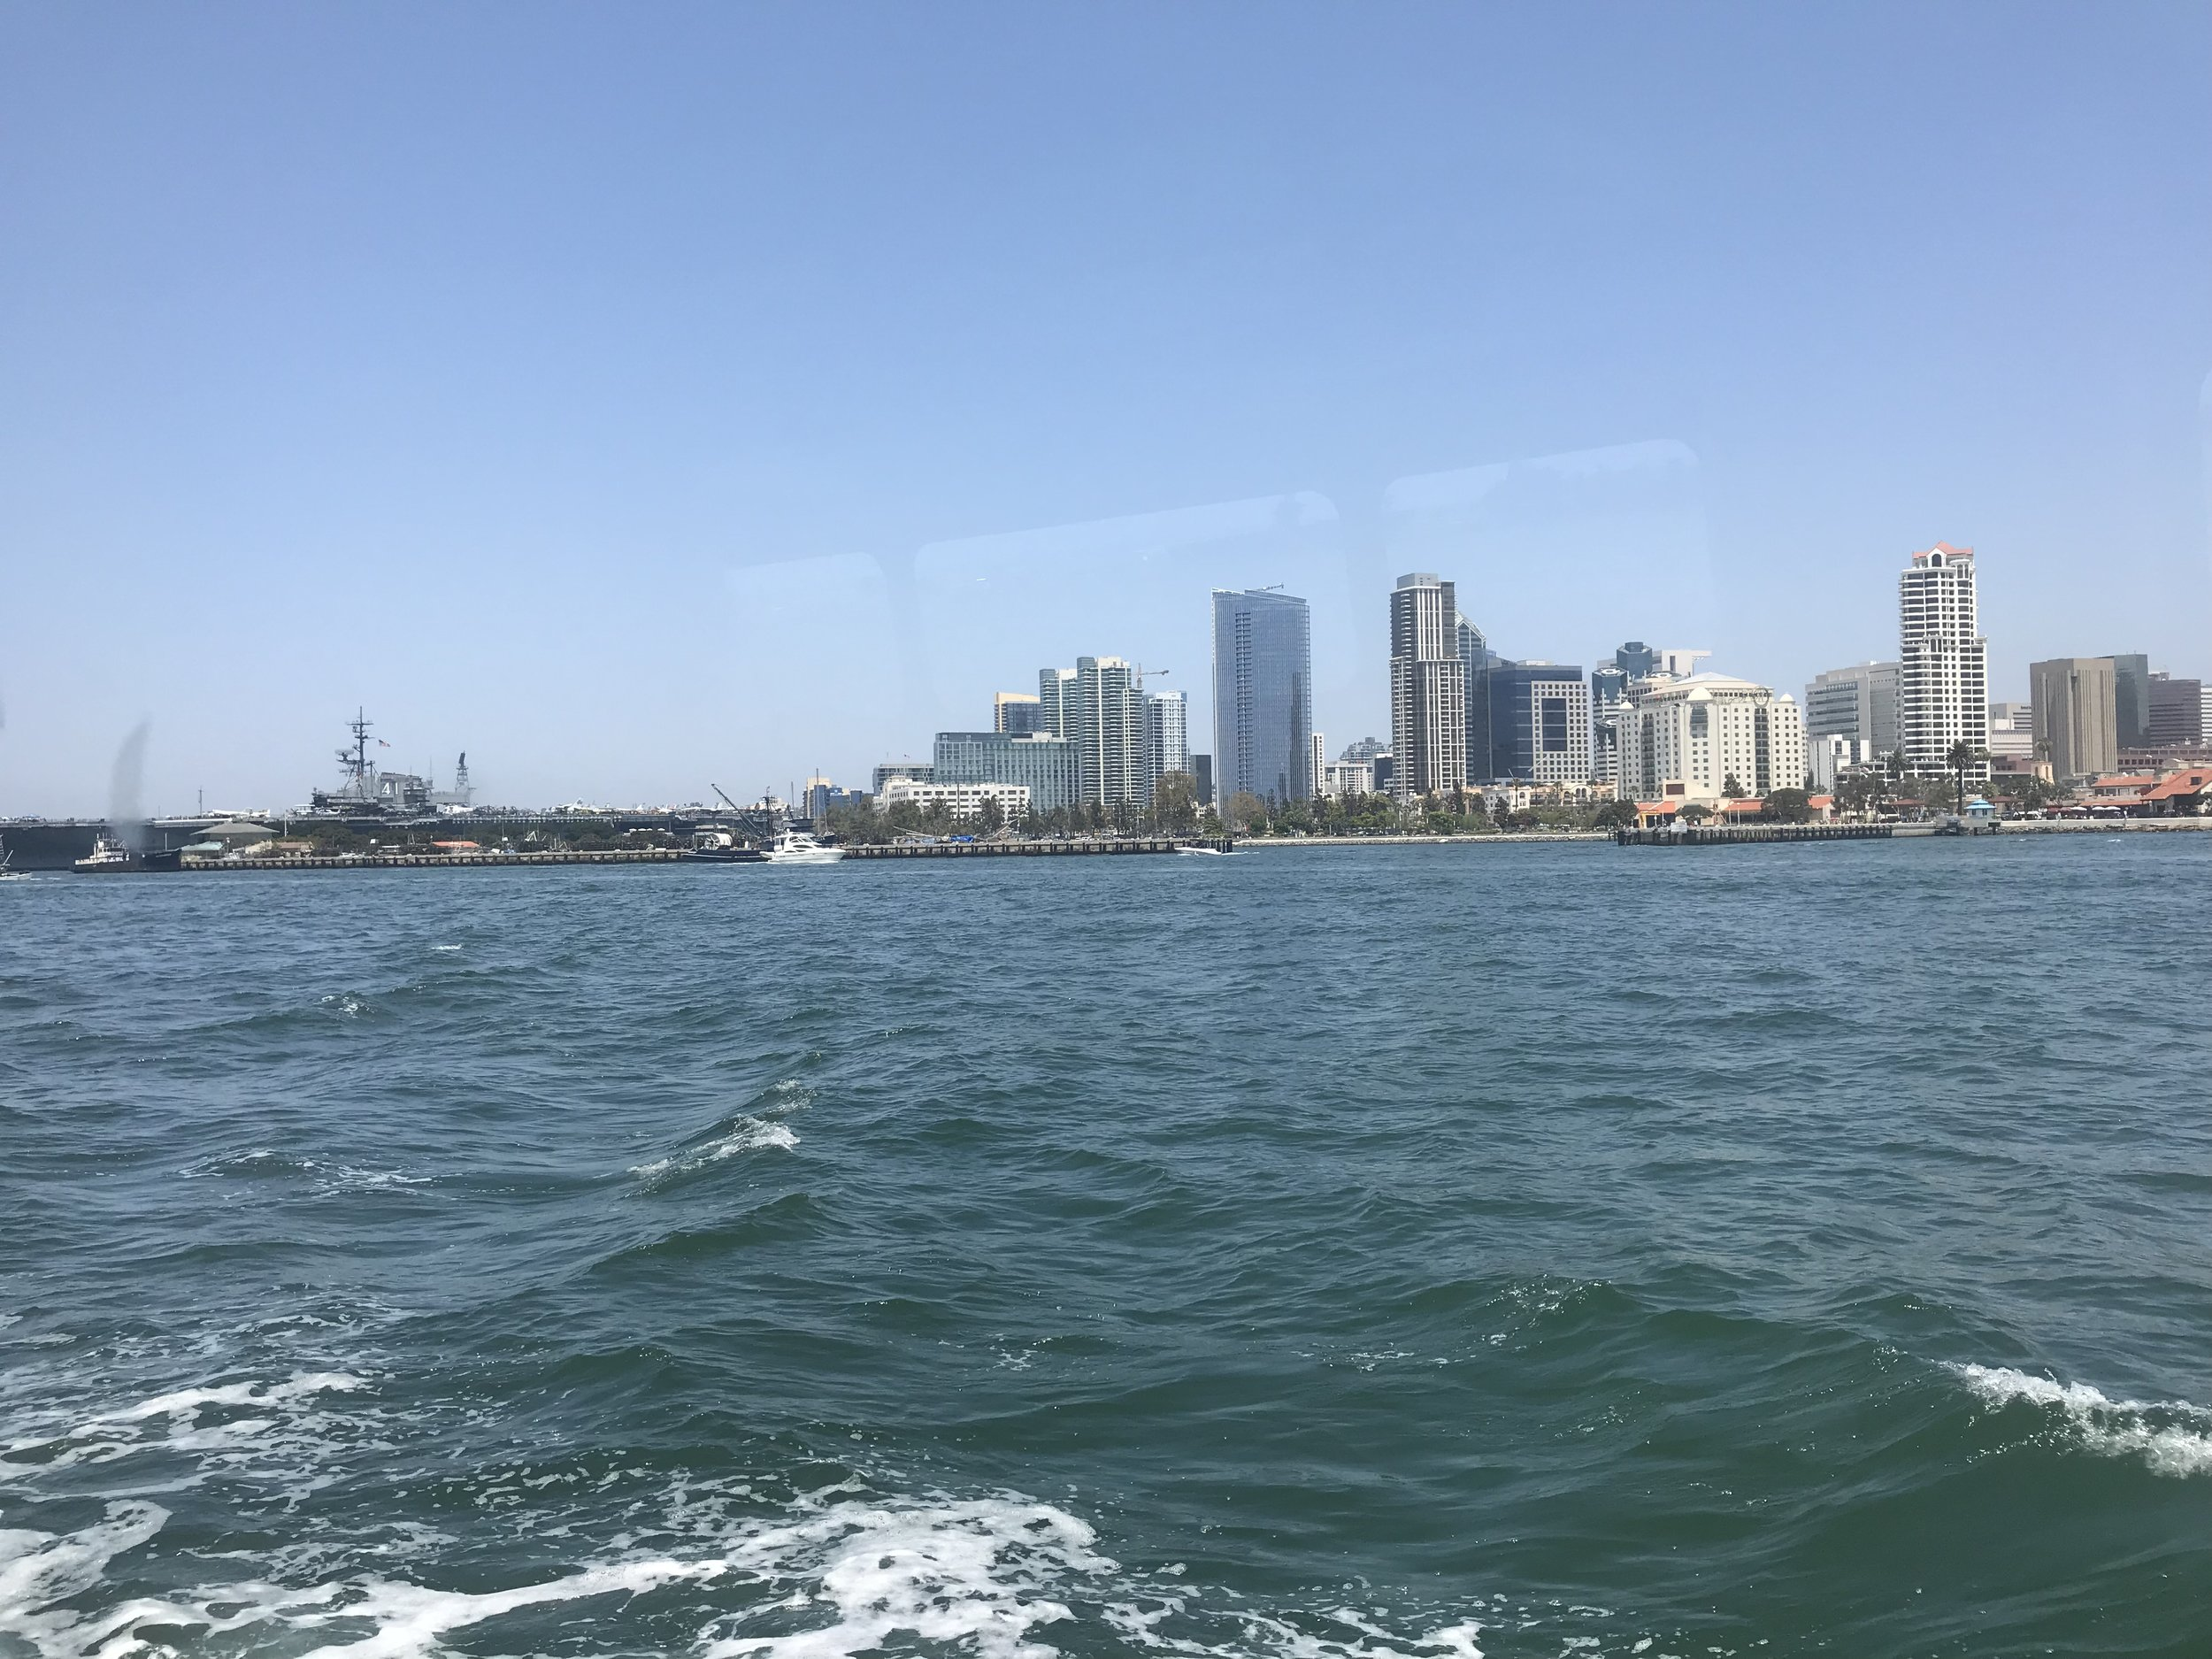 View from the ferry.